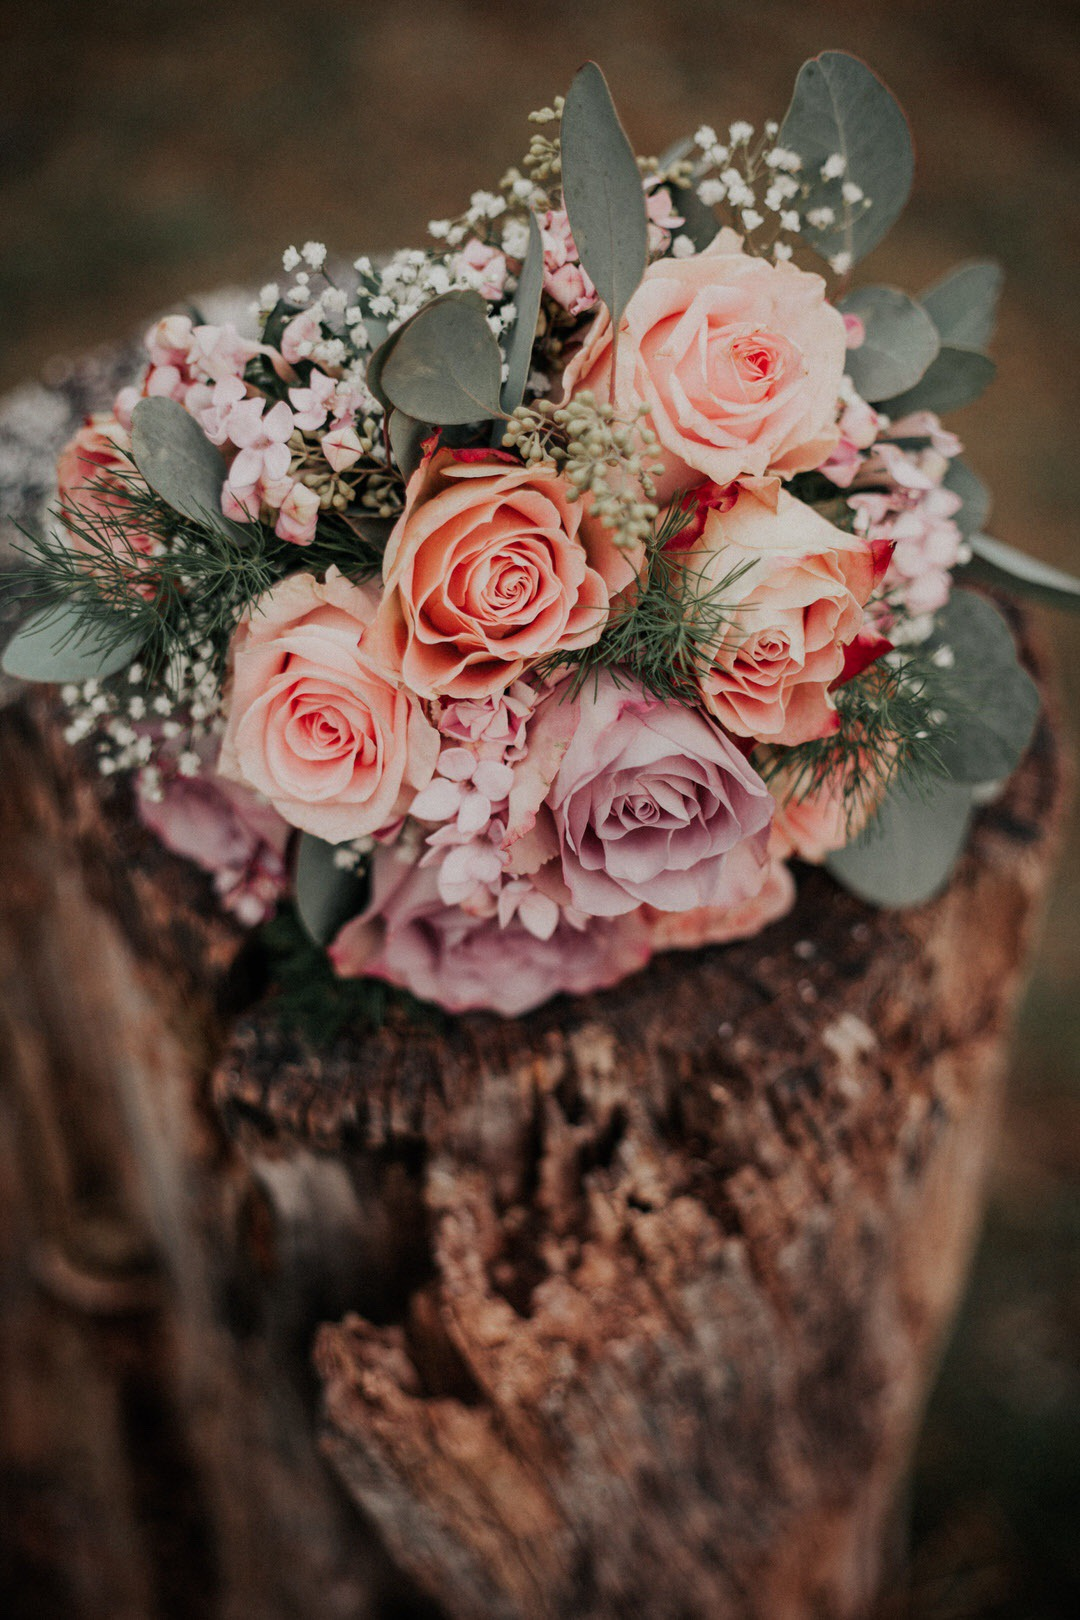 A beautiful rustic and vintage-style winter wedding Bouquet for the brides wedding in Wiesaden, Germany.